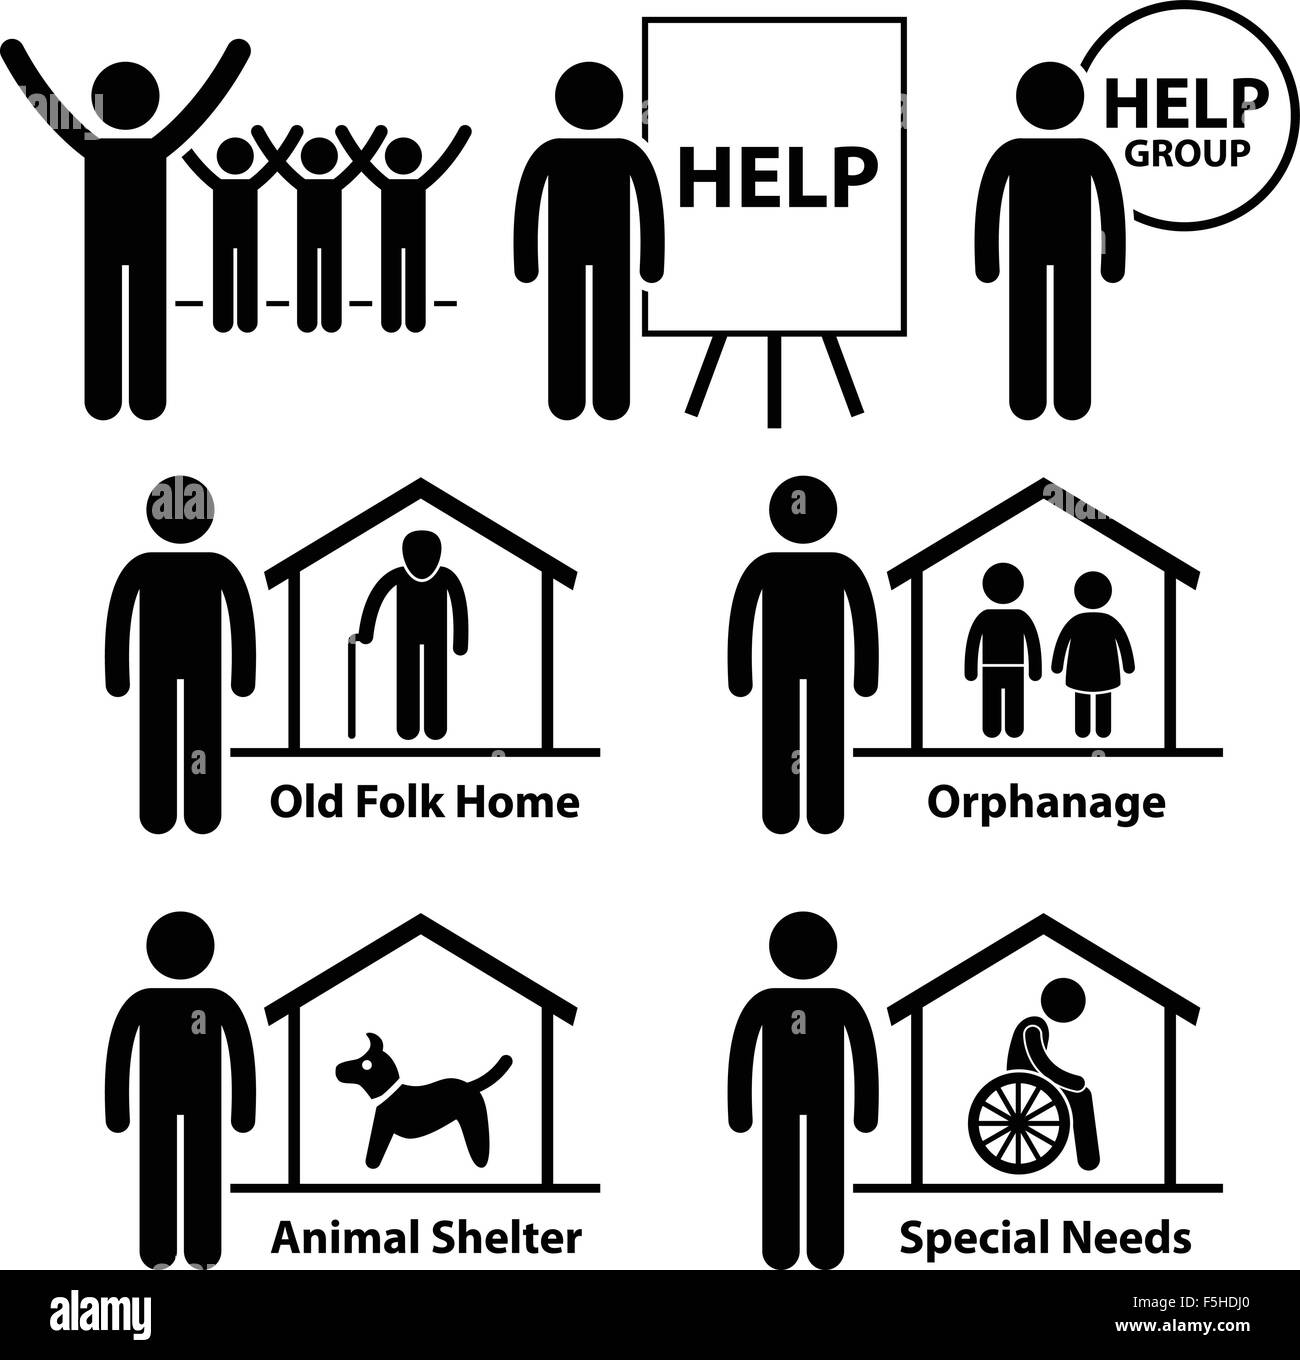 Non Profit Social Service Responsibilities Foundation Volunteer Stick Figure Pictogram Icon - Stock Image